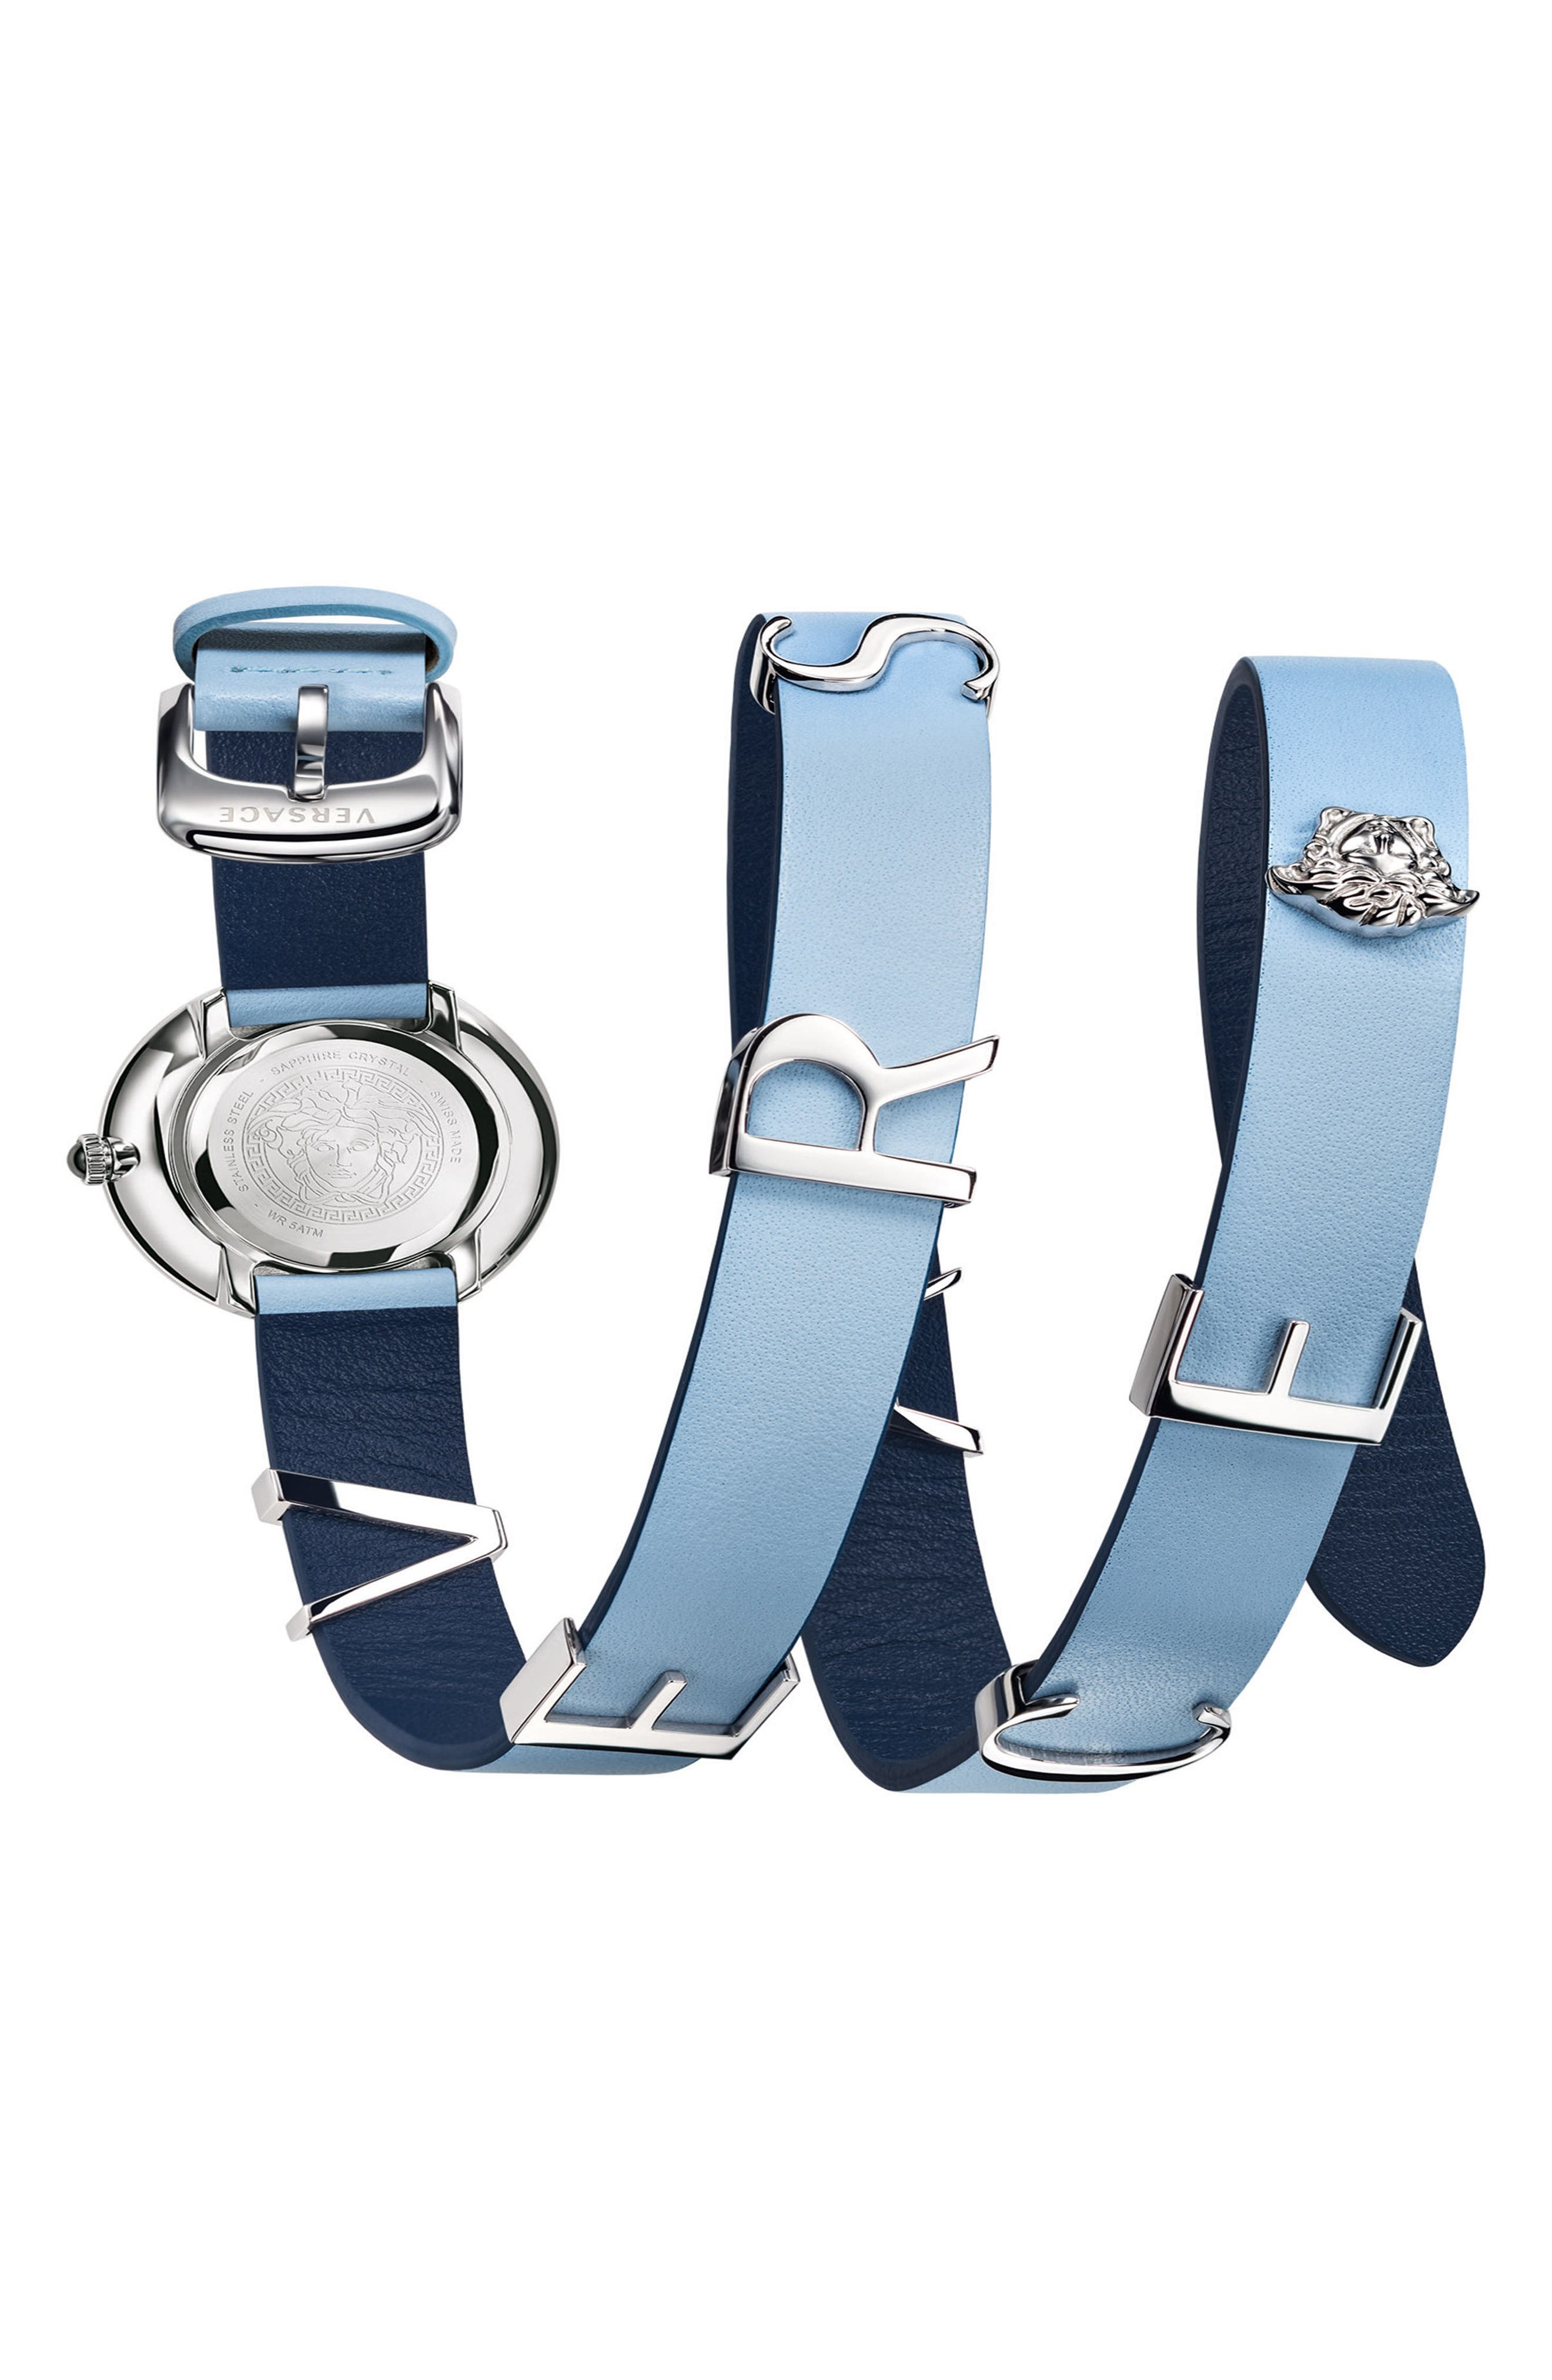 VERSACE, V-Flare Double Wrap Leather Strap Watch, 28mm, Alternate thumbnail 2, color, BLUE/ SILVER/ GOLD